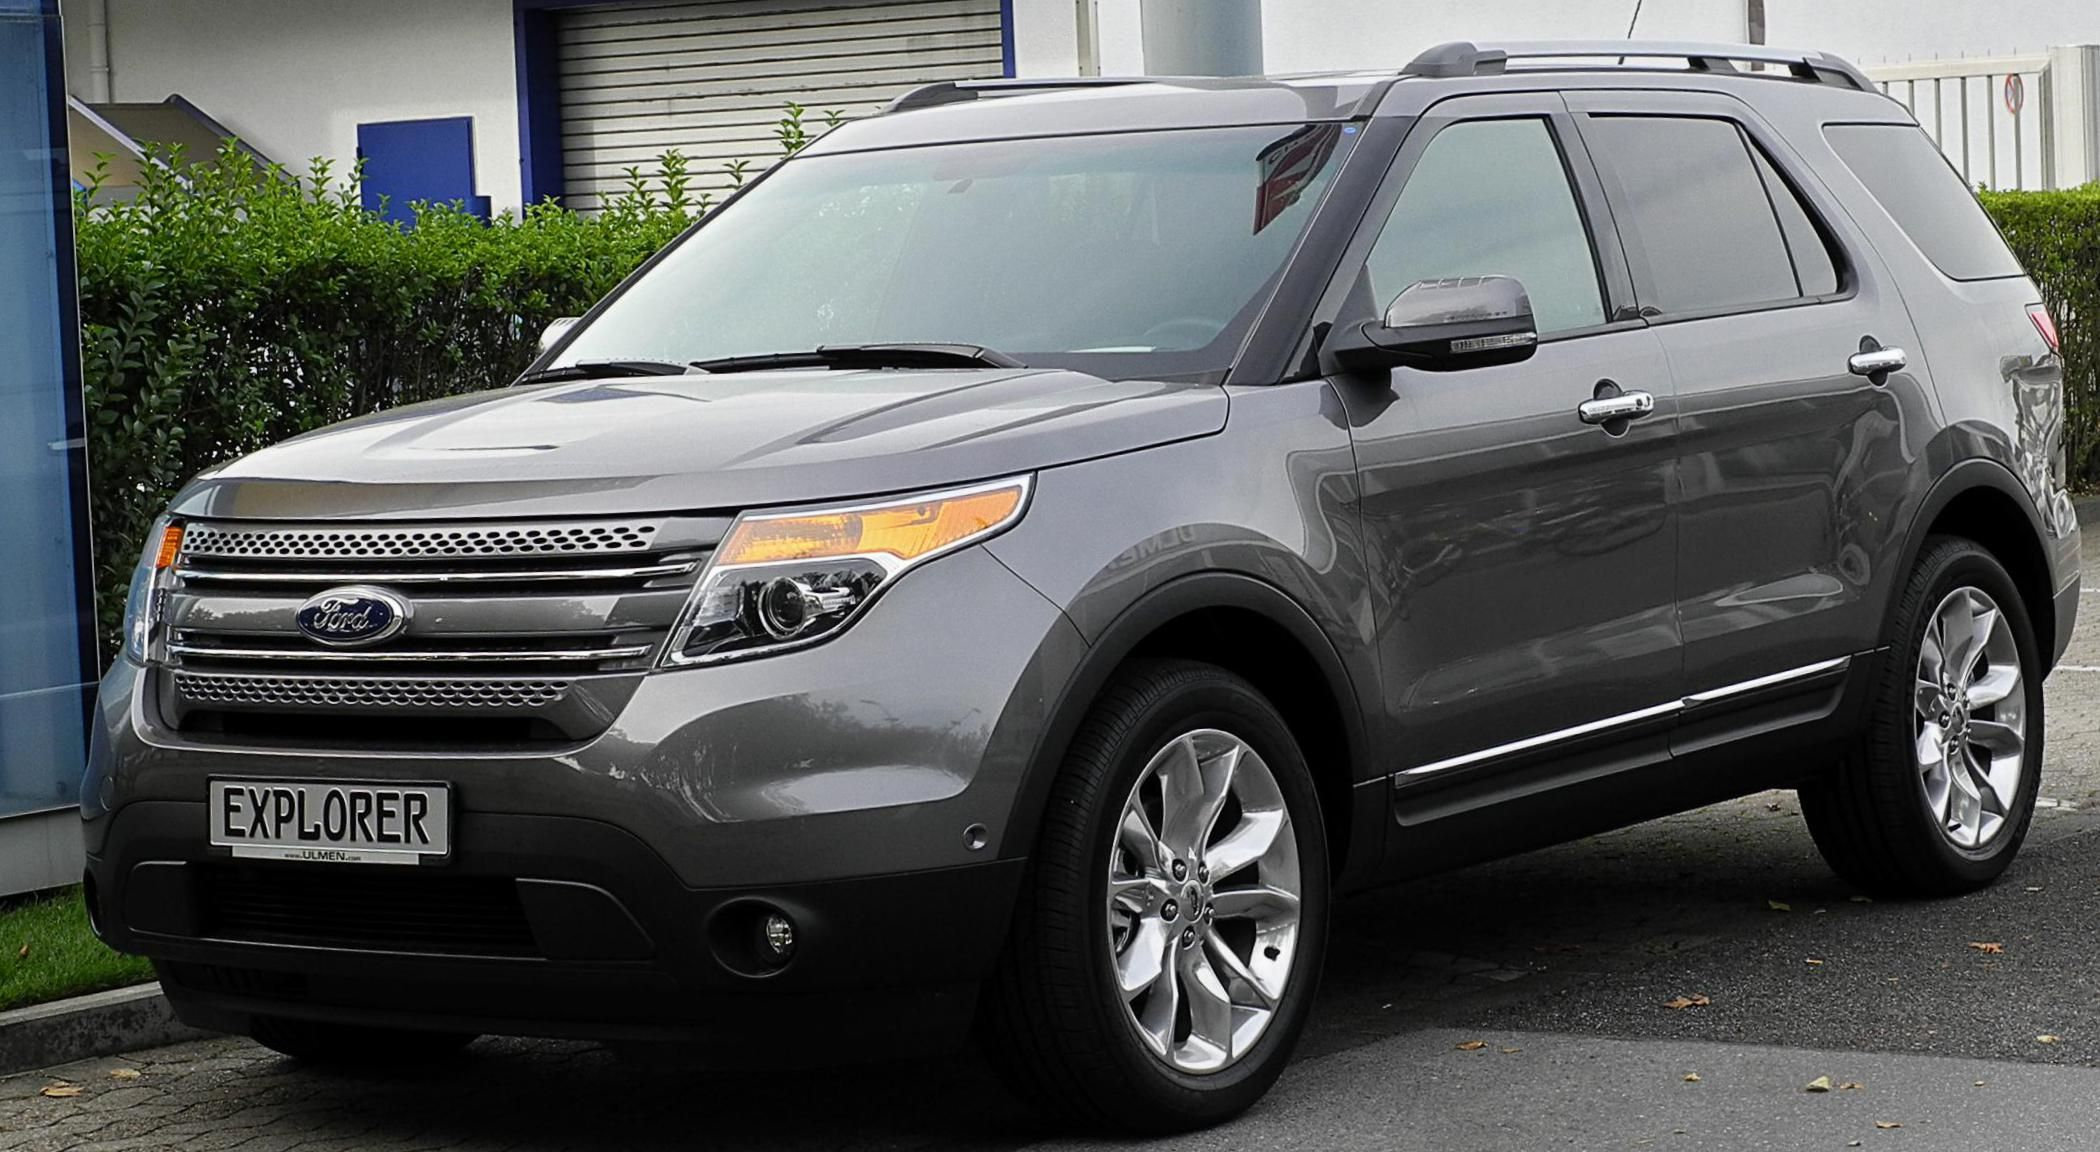 Ford Explorer Photos And Specs Photo Explorer Ford Usa And 24 Perfect Photos Of Ford Explorer Ford Explorer Ford Explorer Accessories Ford Explorer Limited